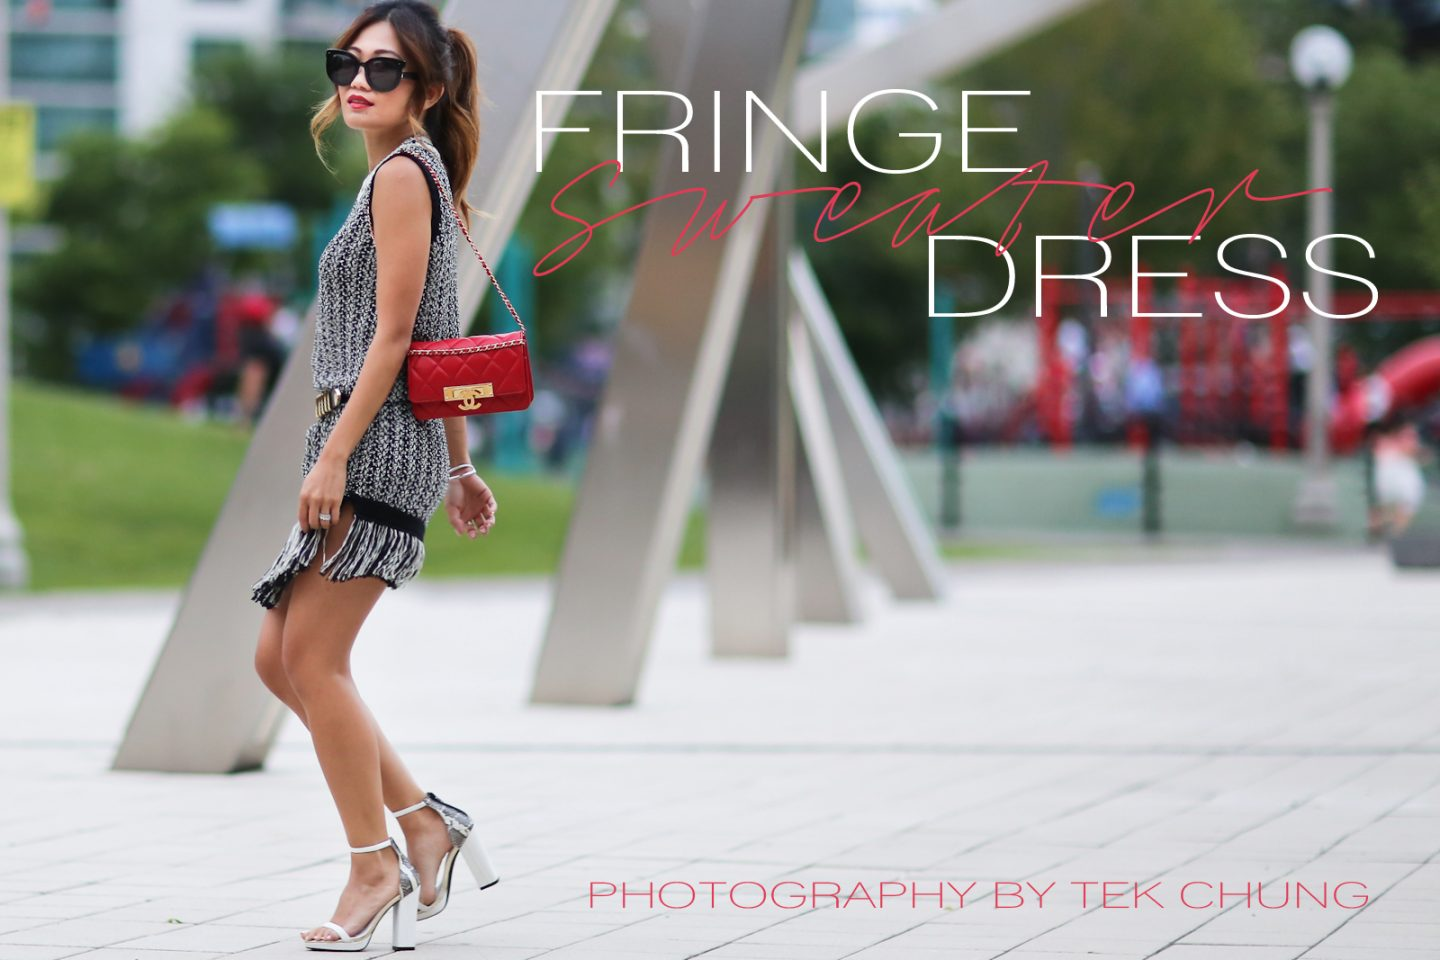 fringe_sweater_dress-1 copy